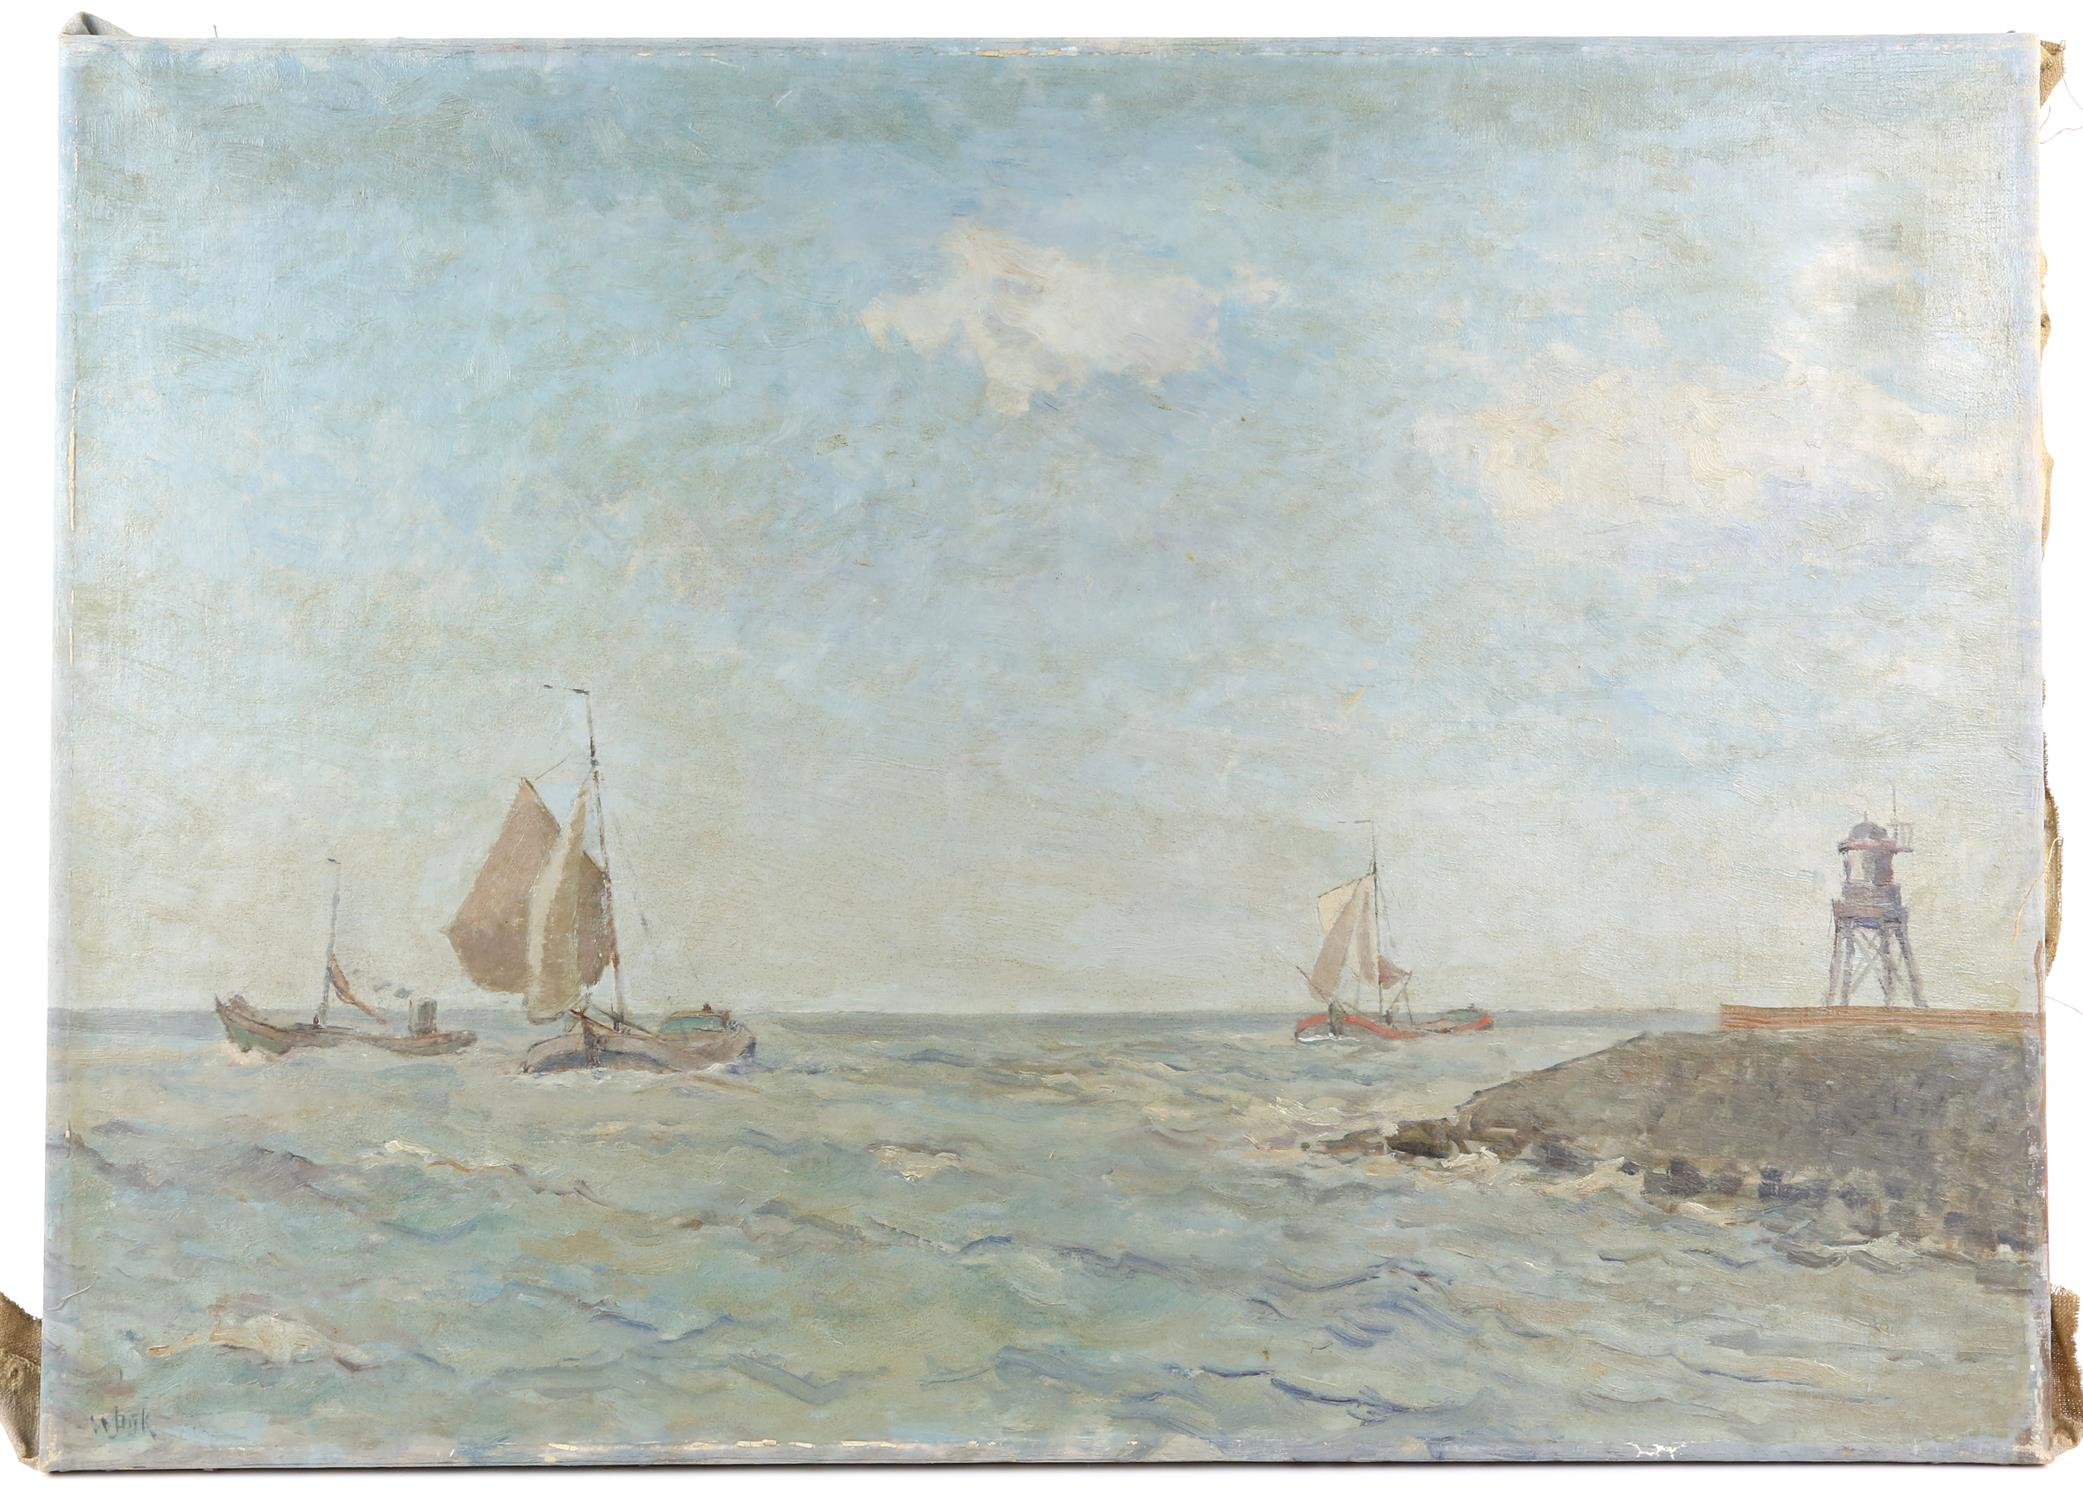 Willem Jans Dijk, Dutch 1881-1970, ships at sea off the coast, signed, oil on canvas, 51 x 72cm,